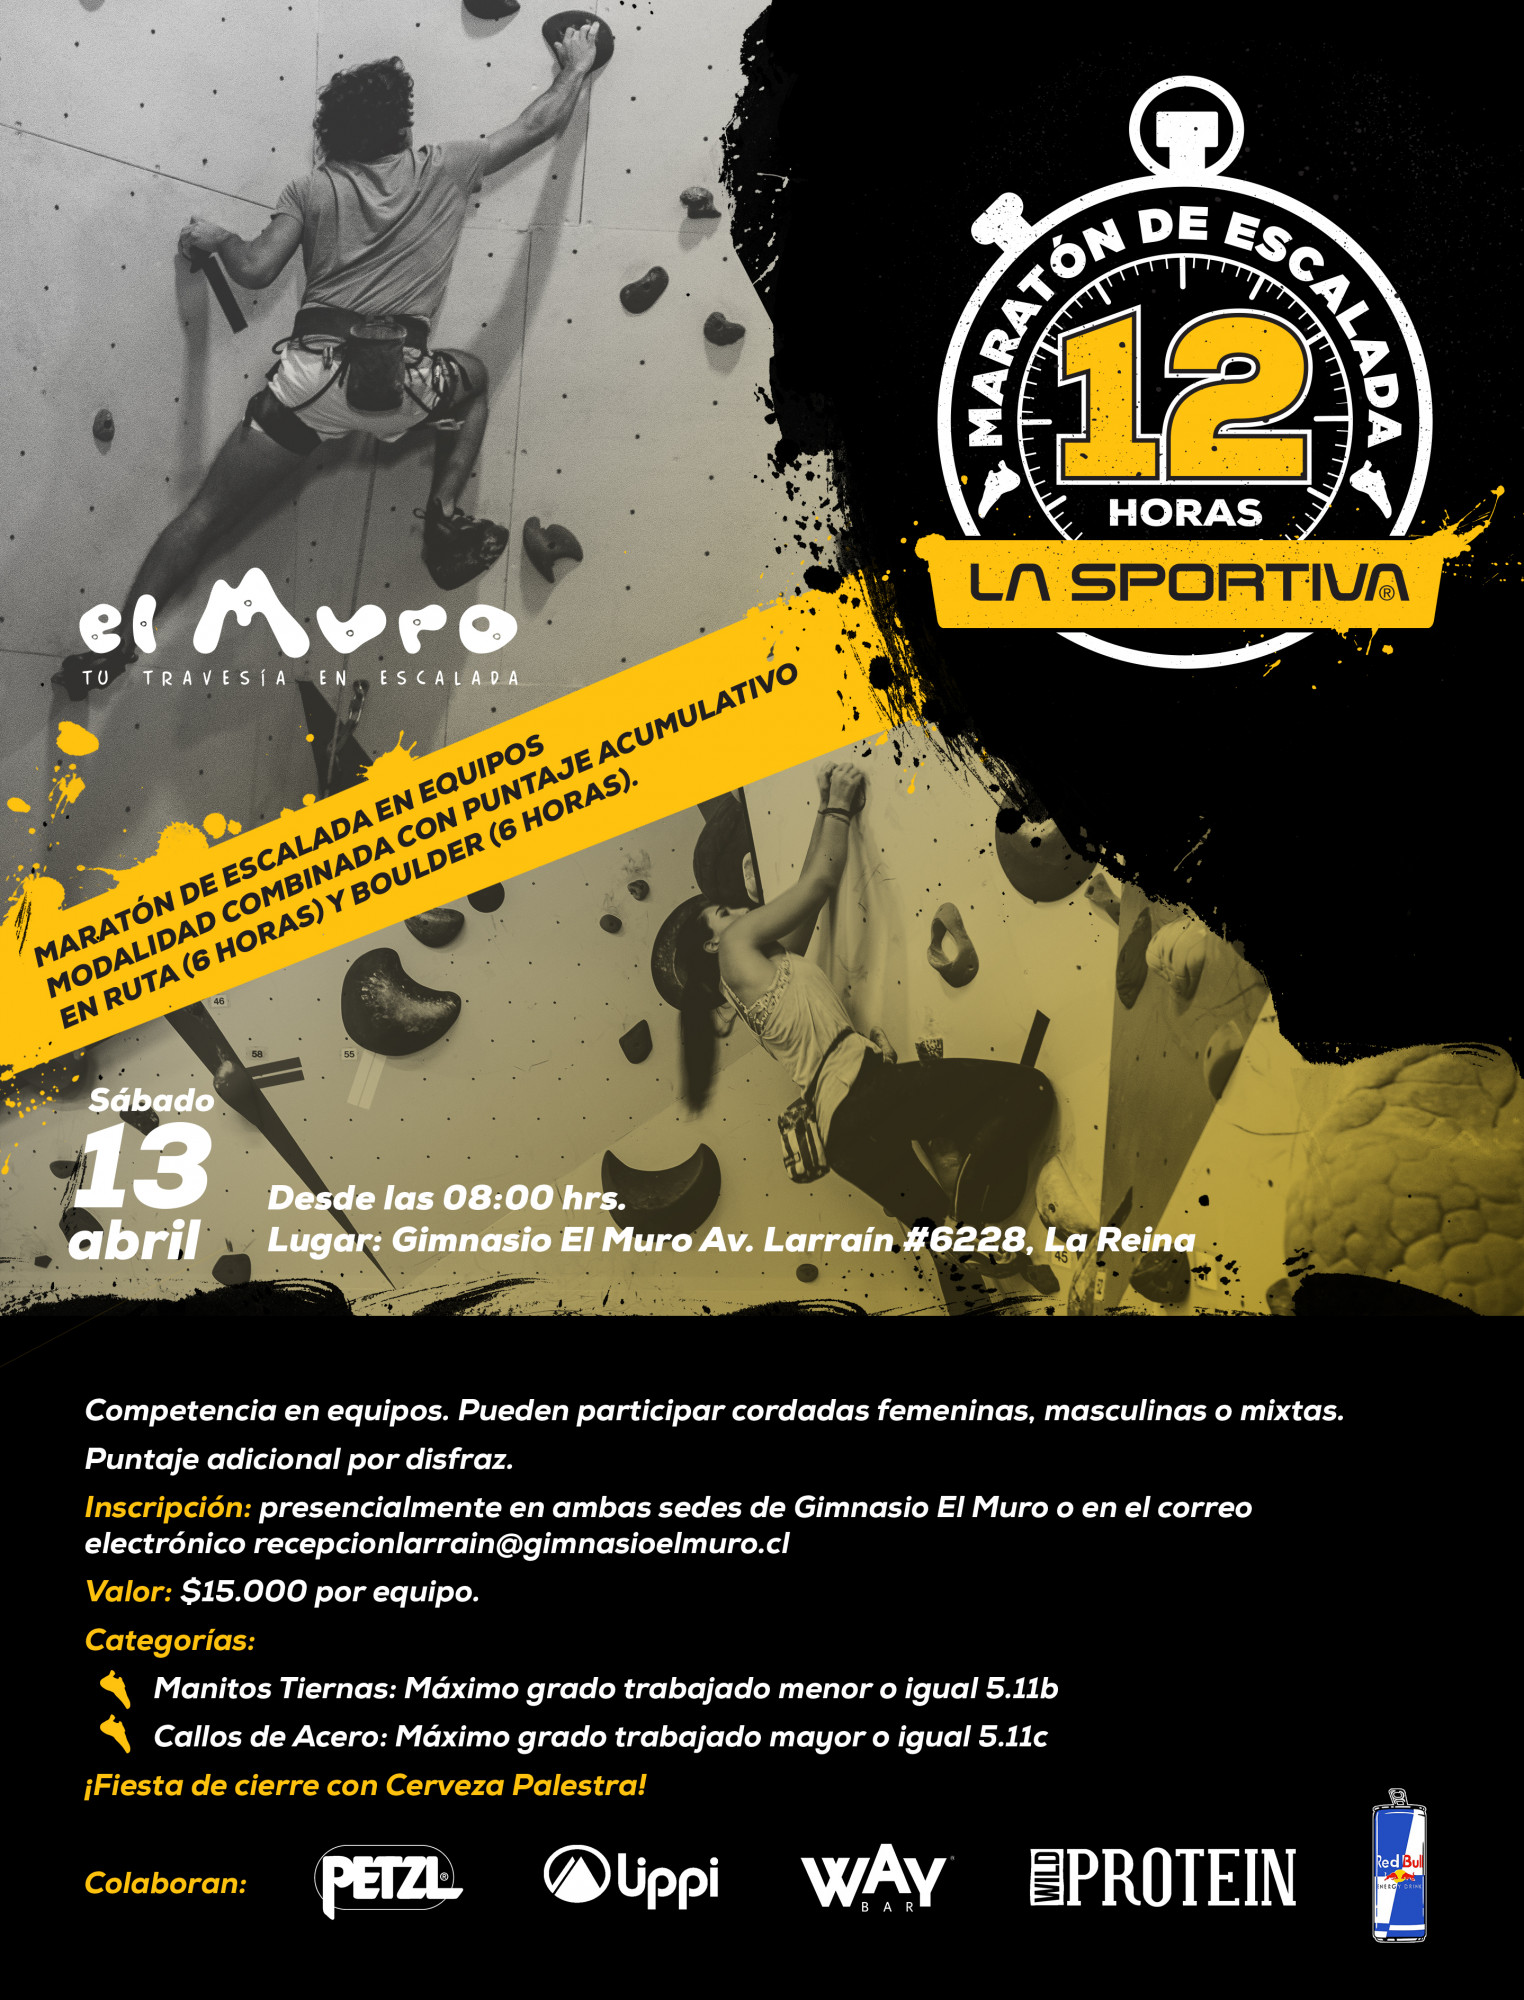 Flyer-Web-La-Sportiva-12-Horas